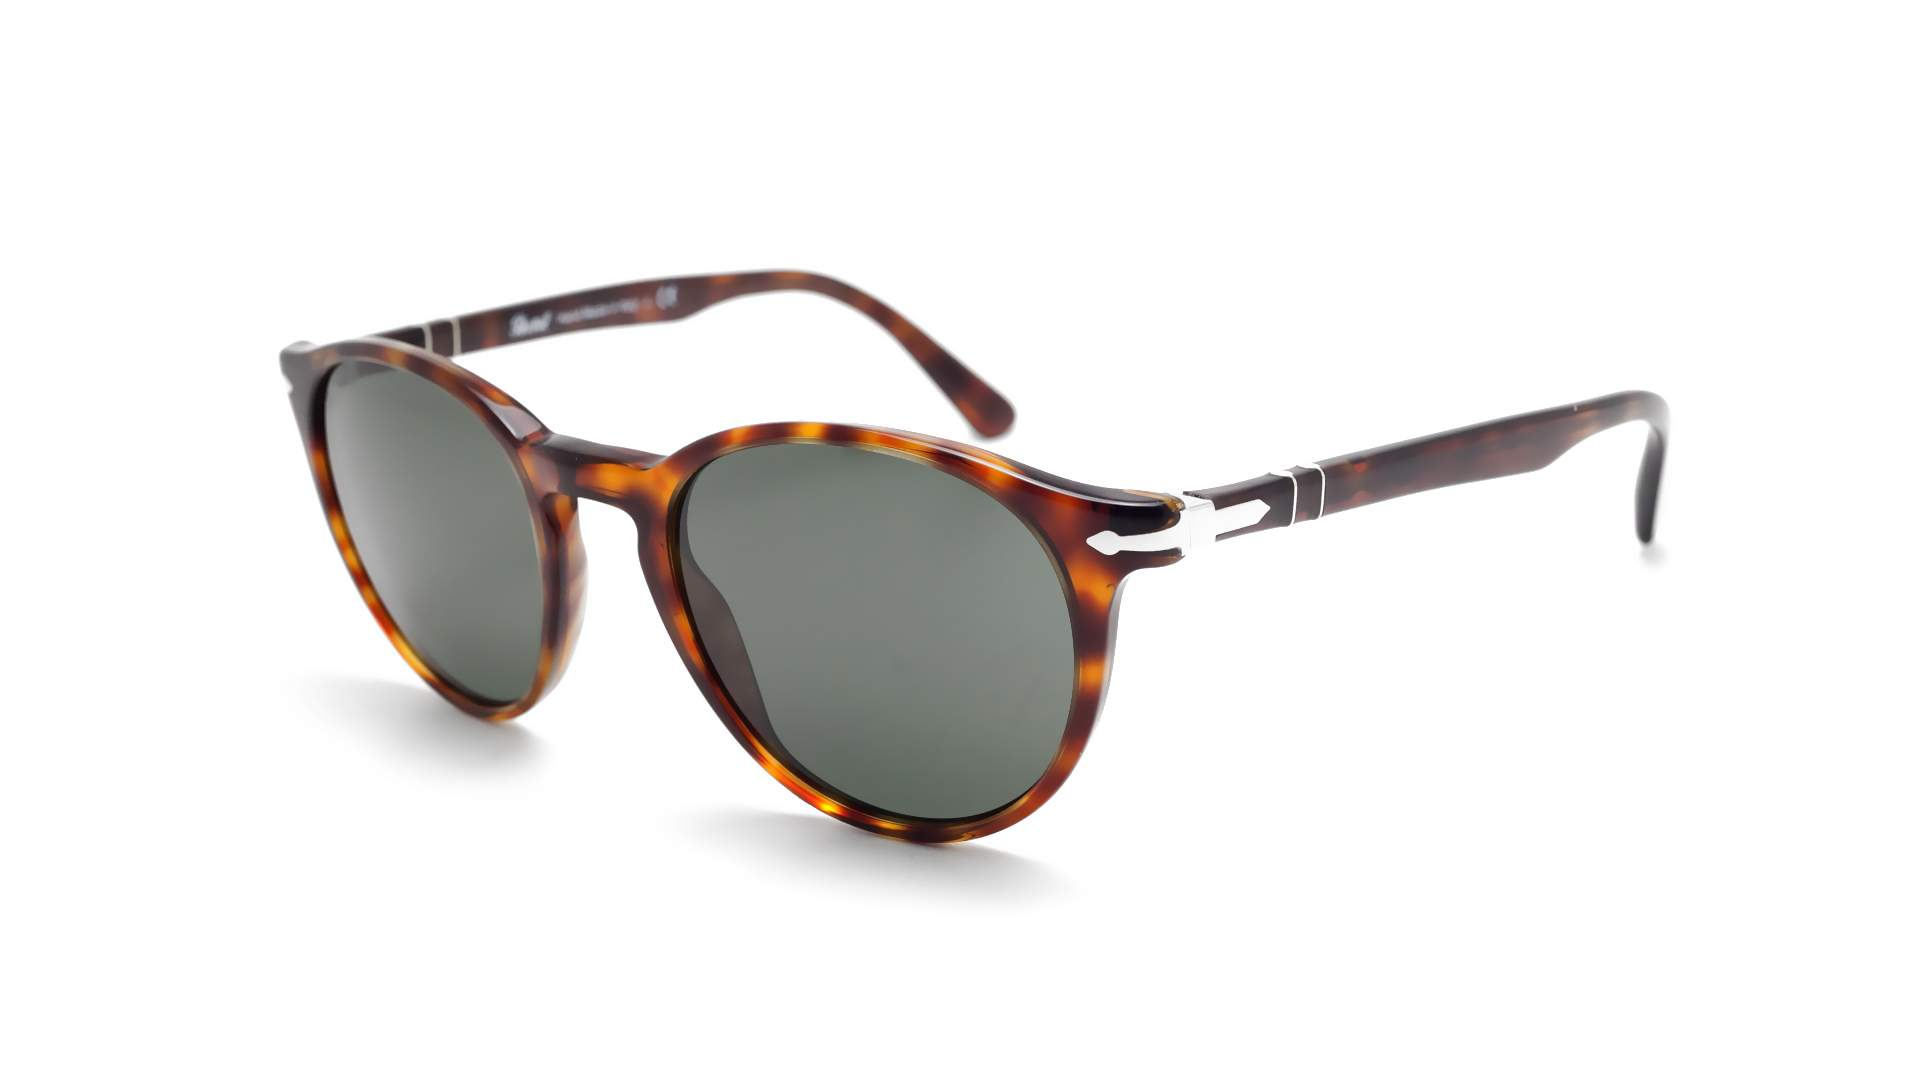 ce9f12574f Sunglasses Persol PO3152S 9015 31 49-20 Tortoise Medium